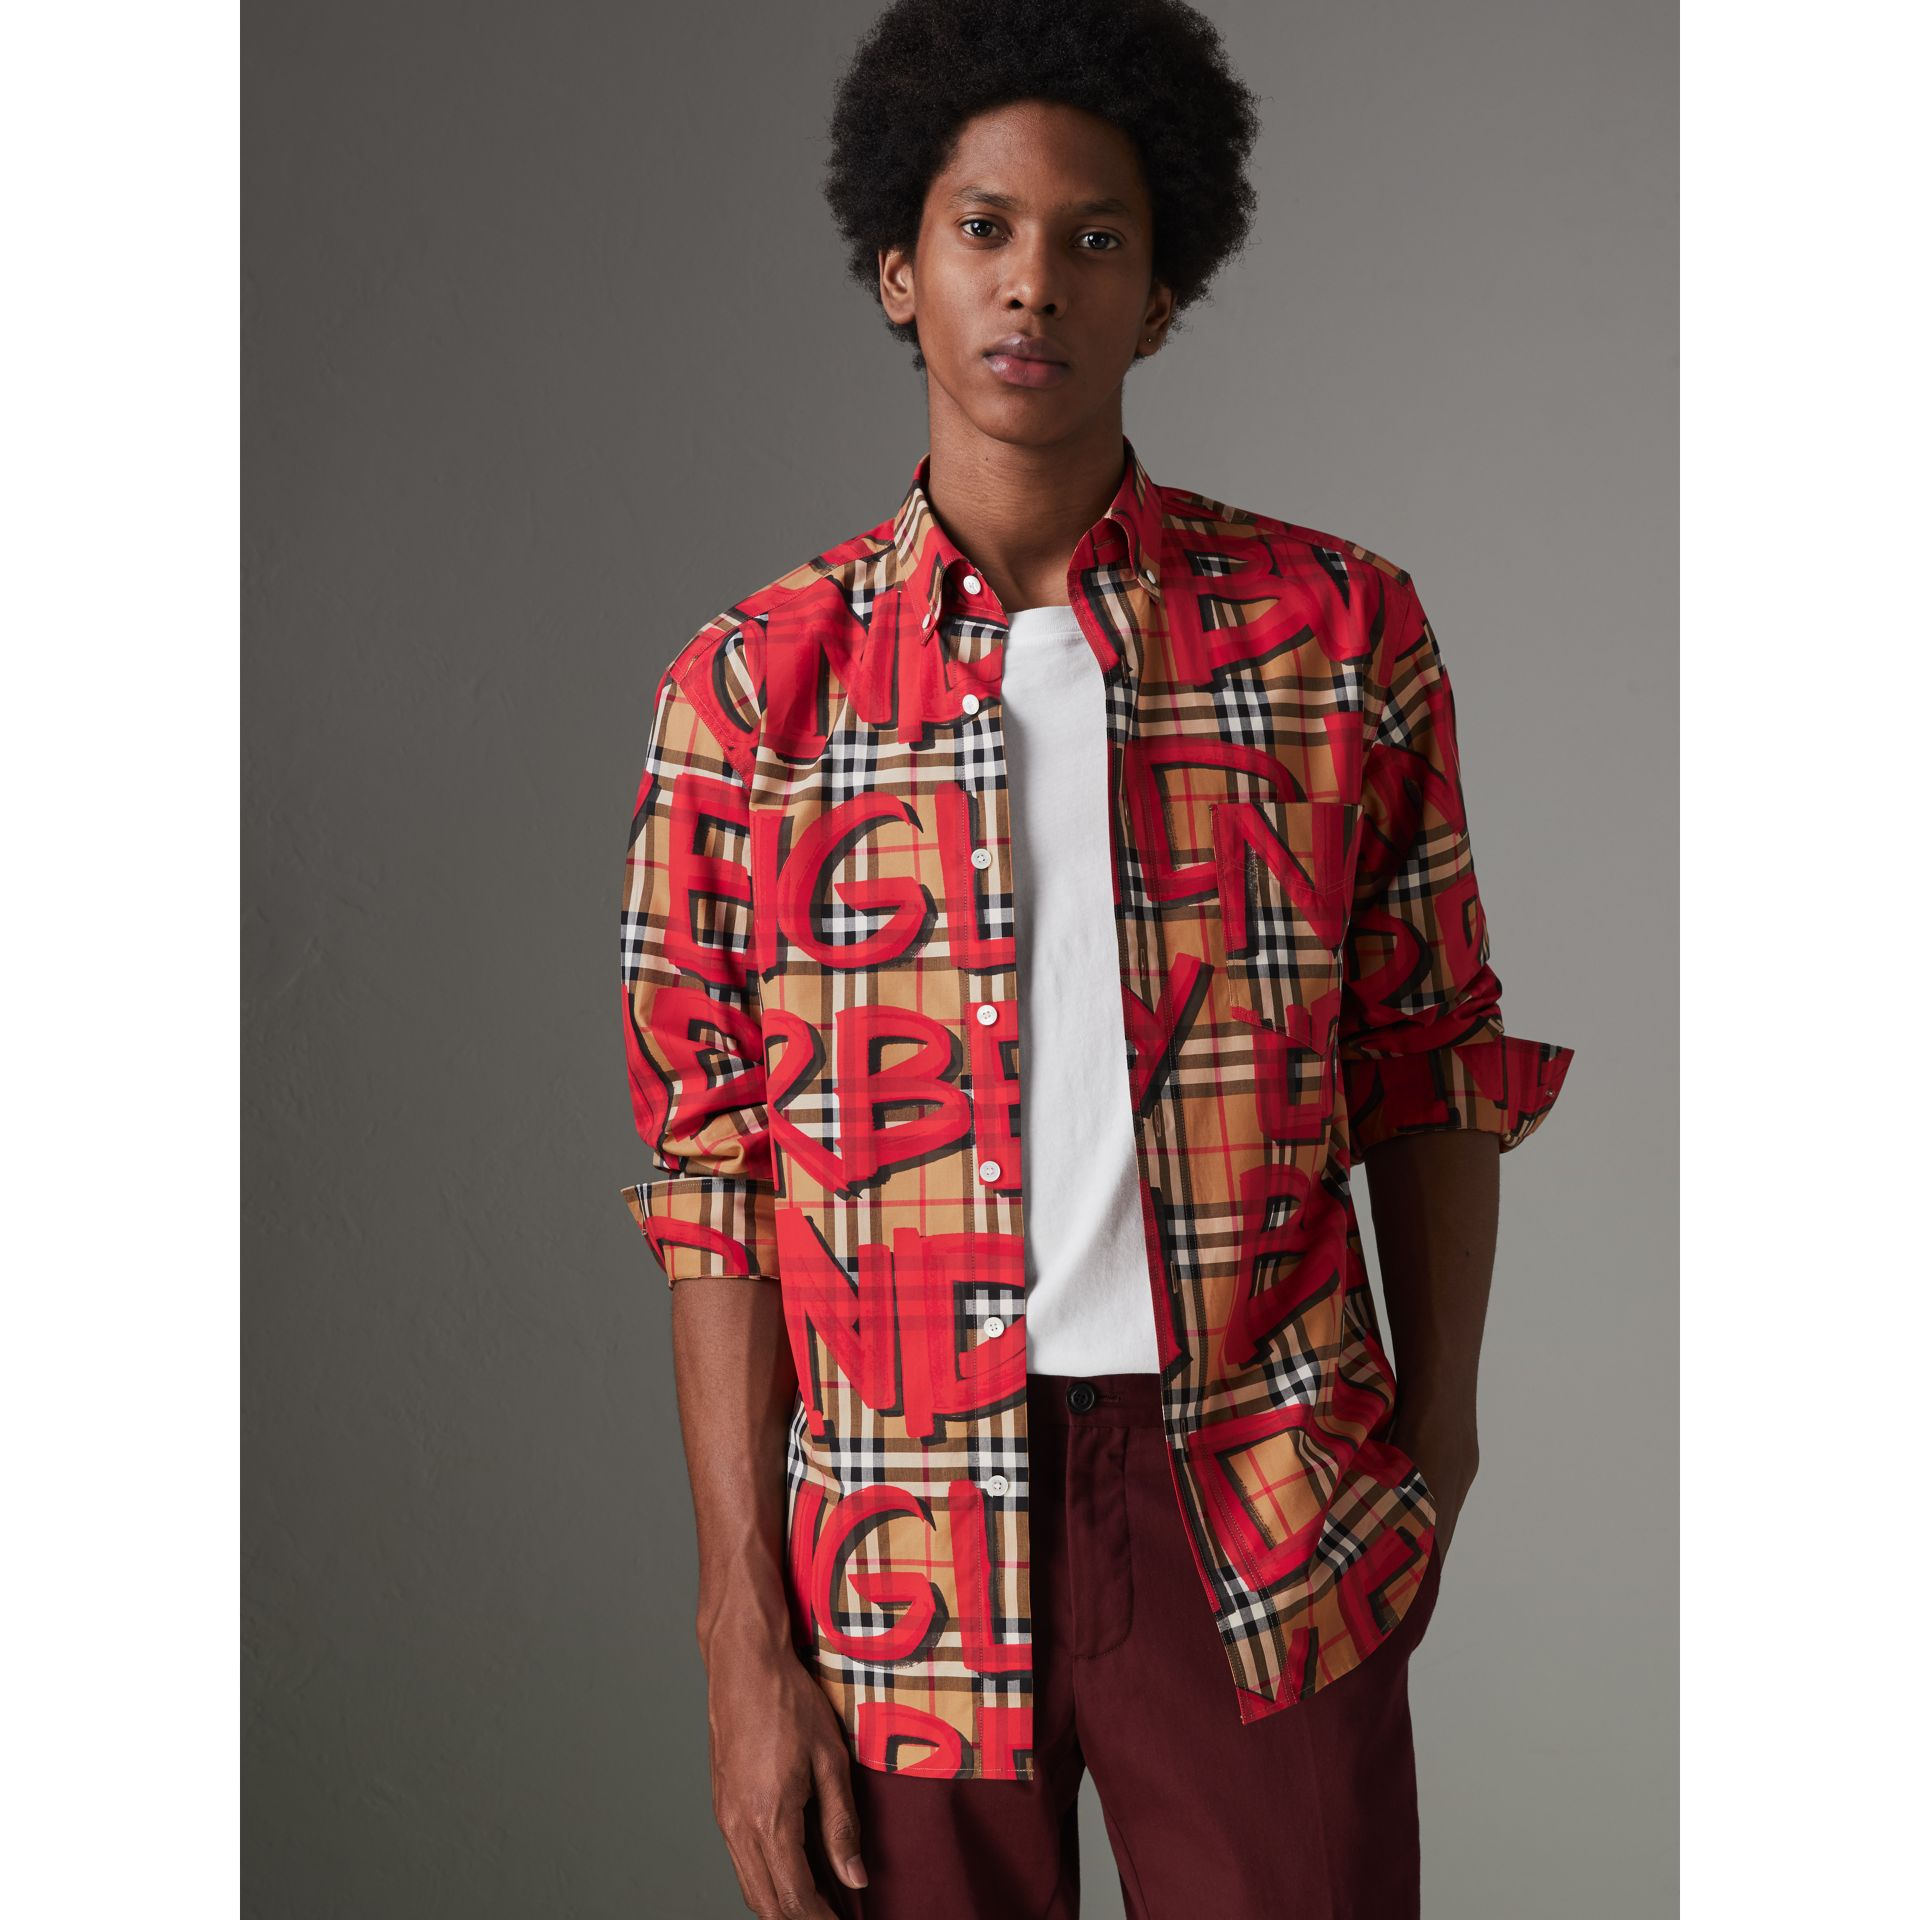 Graffiti Print Vintage Check Shirt in Bright Red - Men | Burberry Australia - gallery image 4